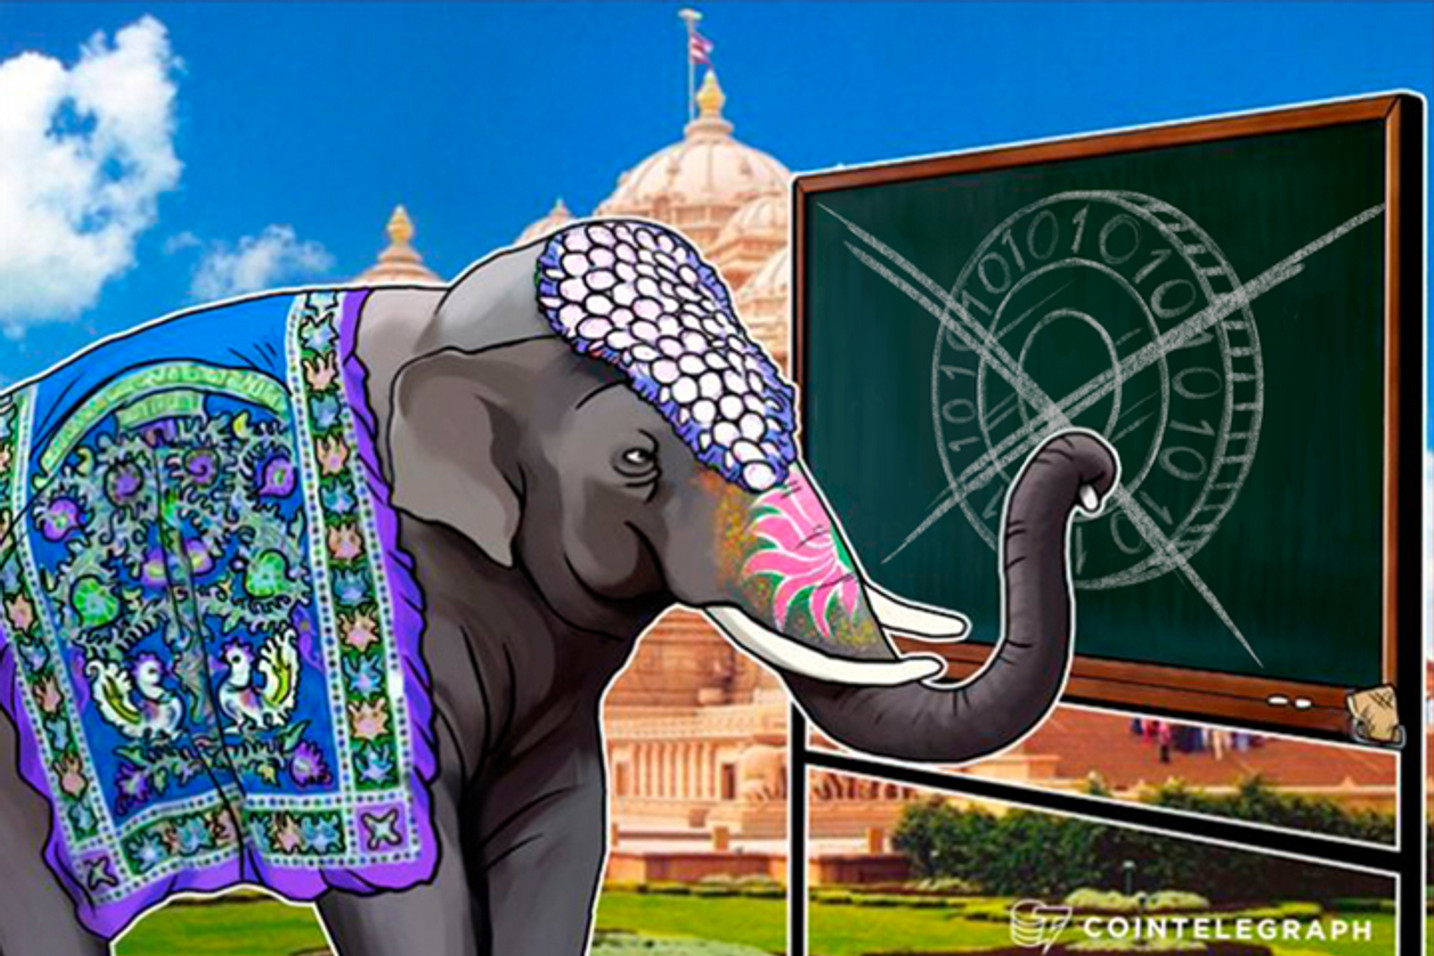 India: Two Crypto Exchanges Halt Trading, Blame 'Discouraging' Government Stance